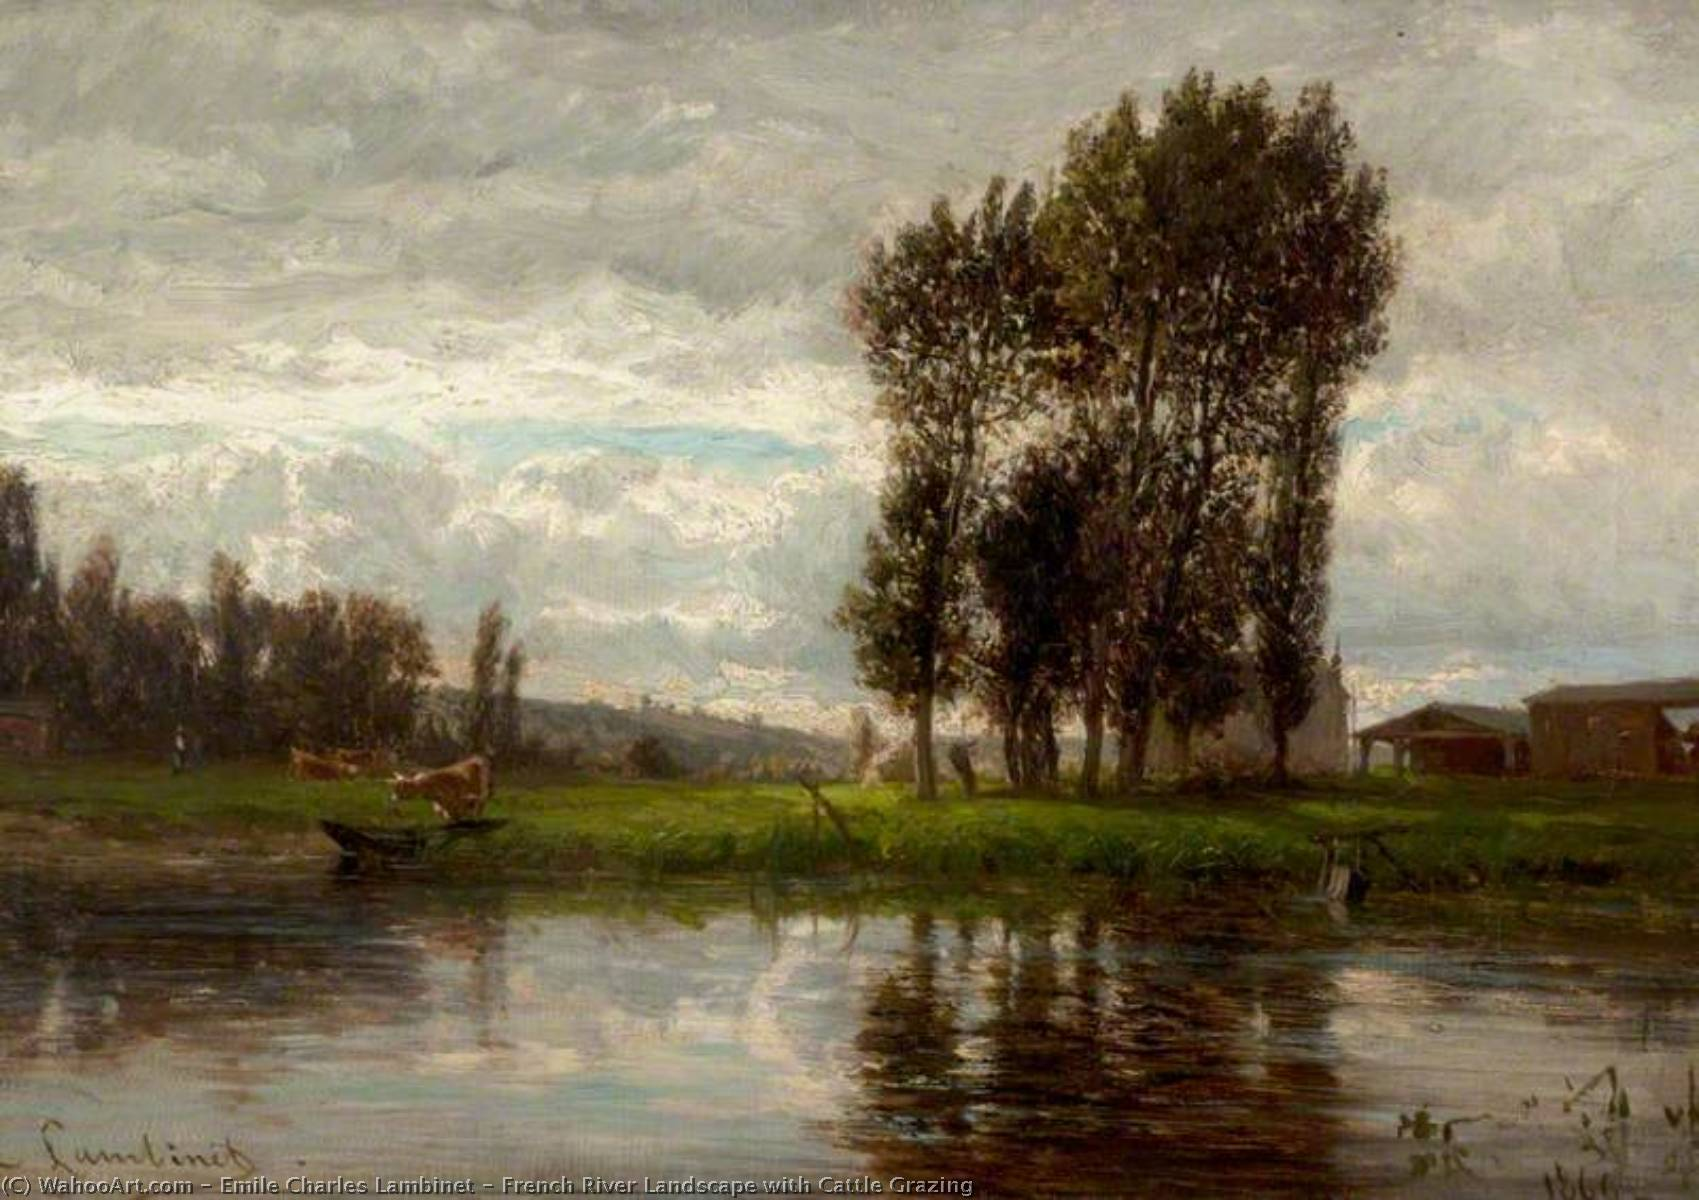 French River Landscape with Cattle Grazing, Oil On Canvas by Emile Charles Lambinet